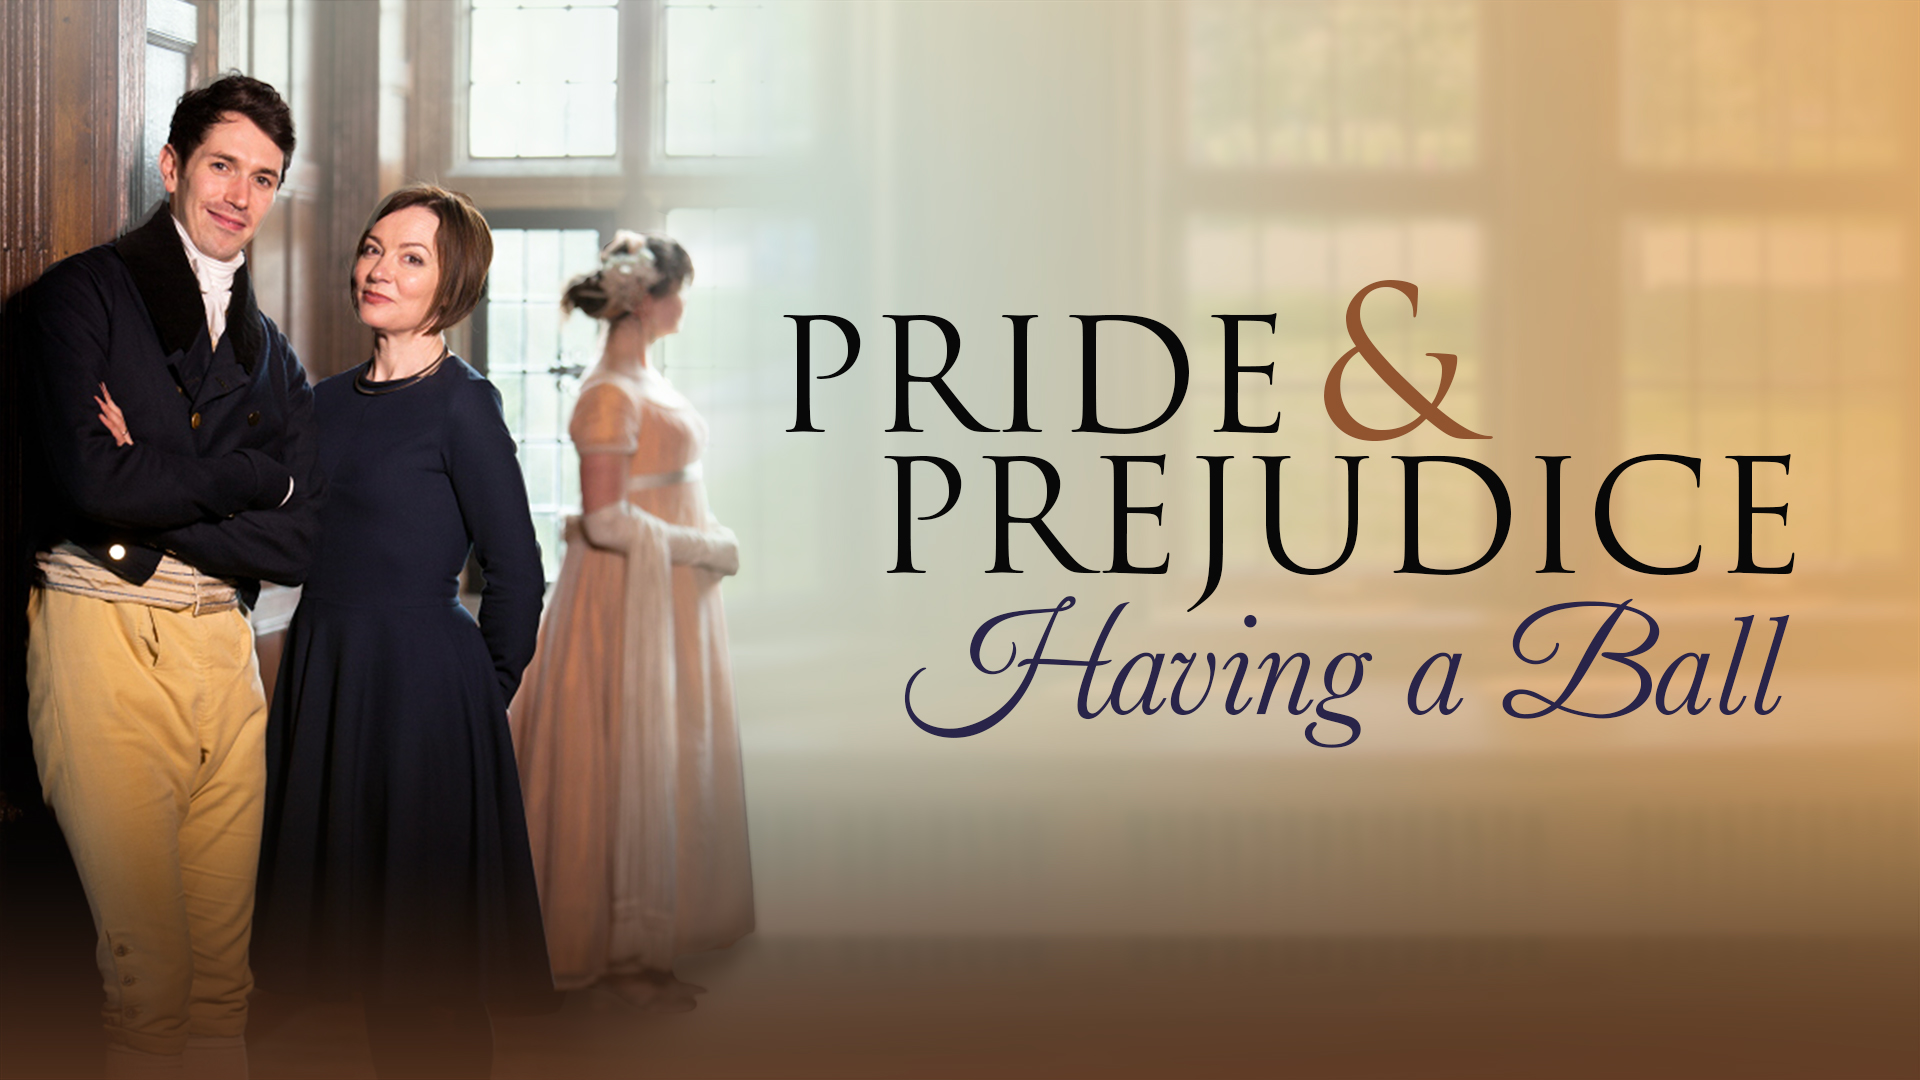 Pride & Prejudice: Having a Ball